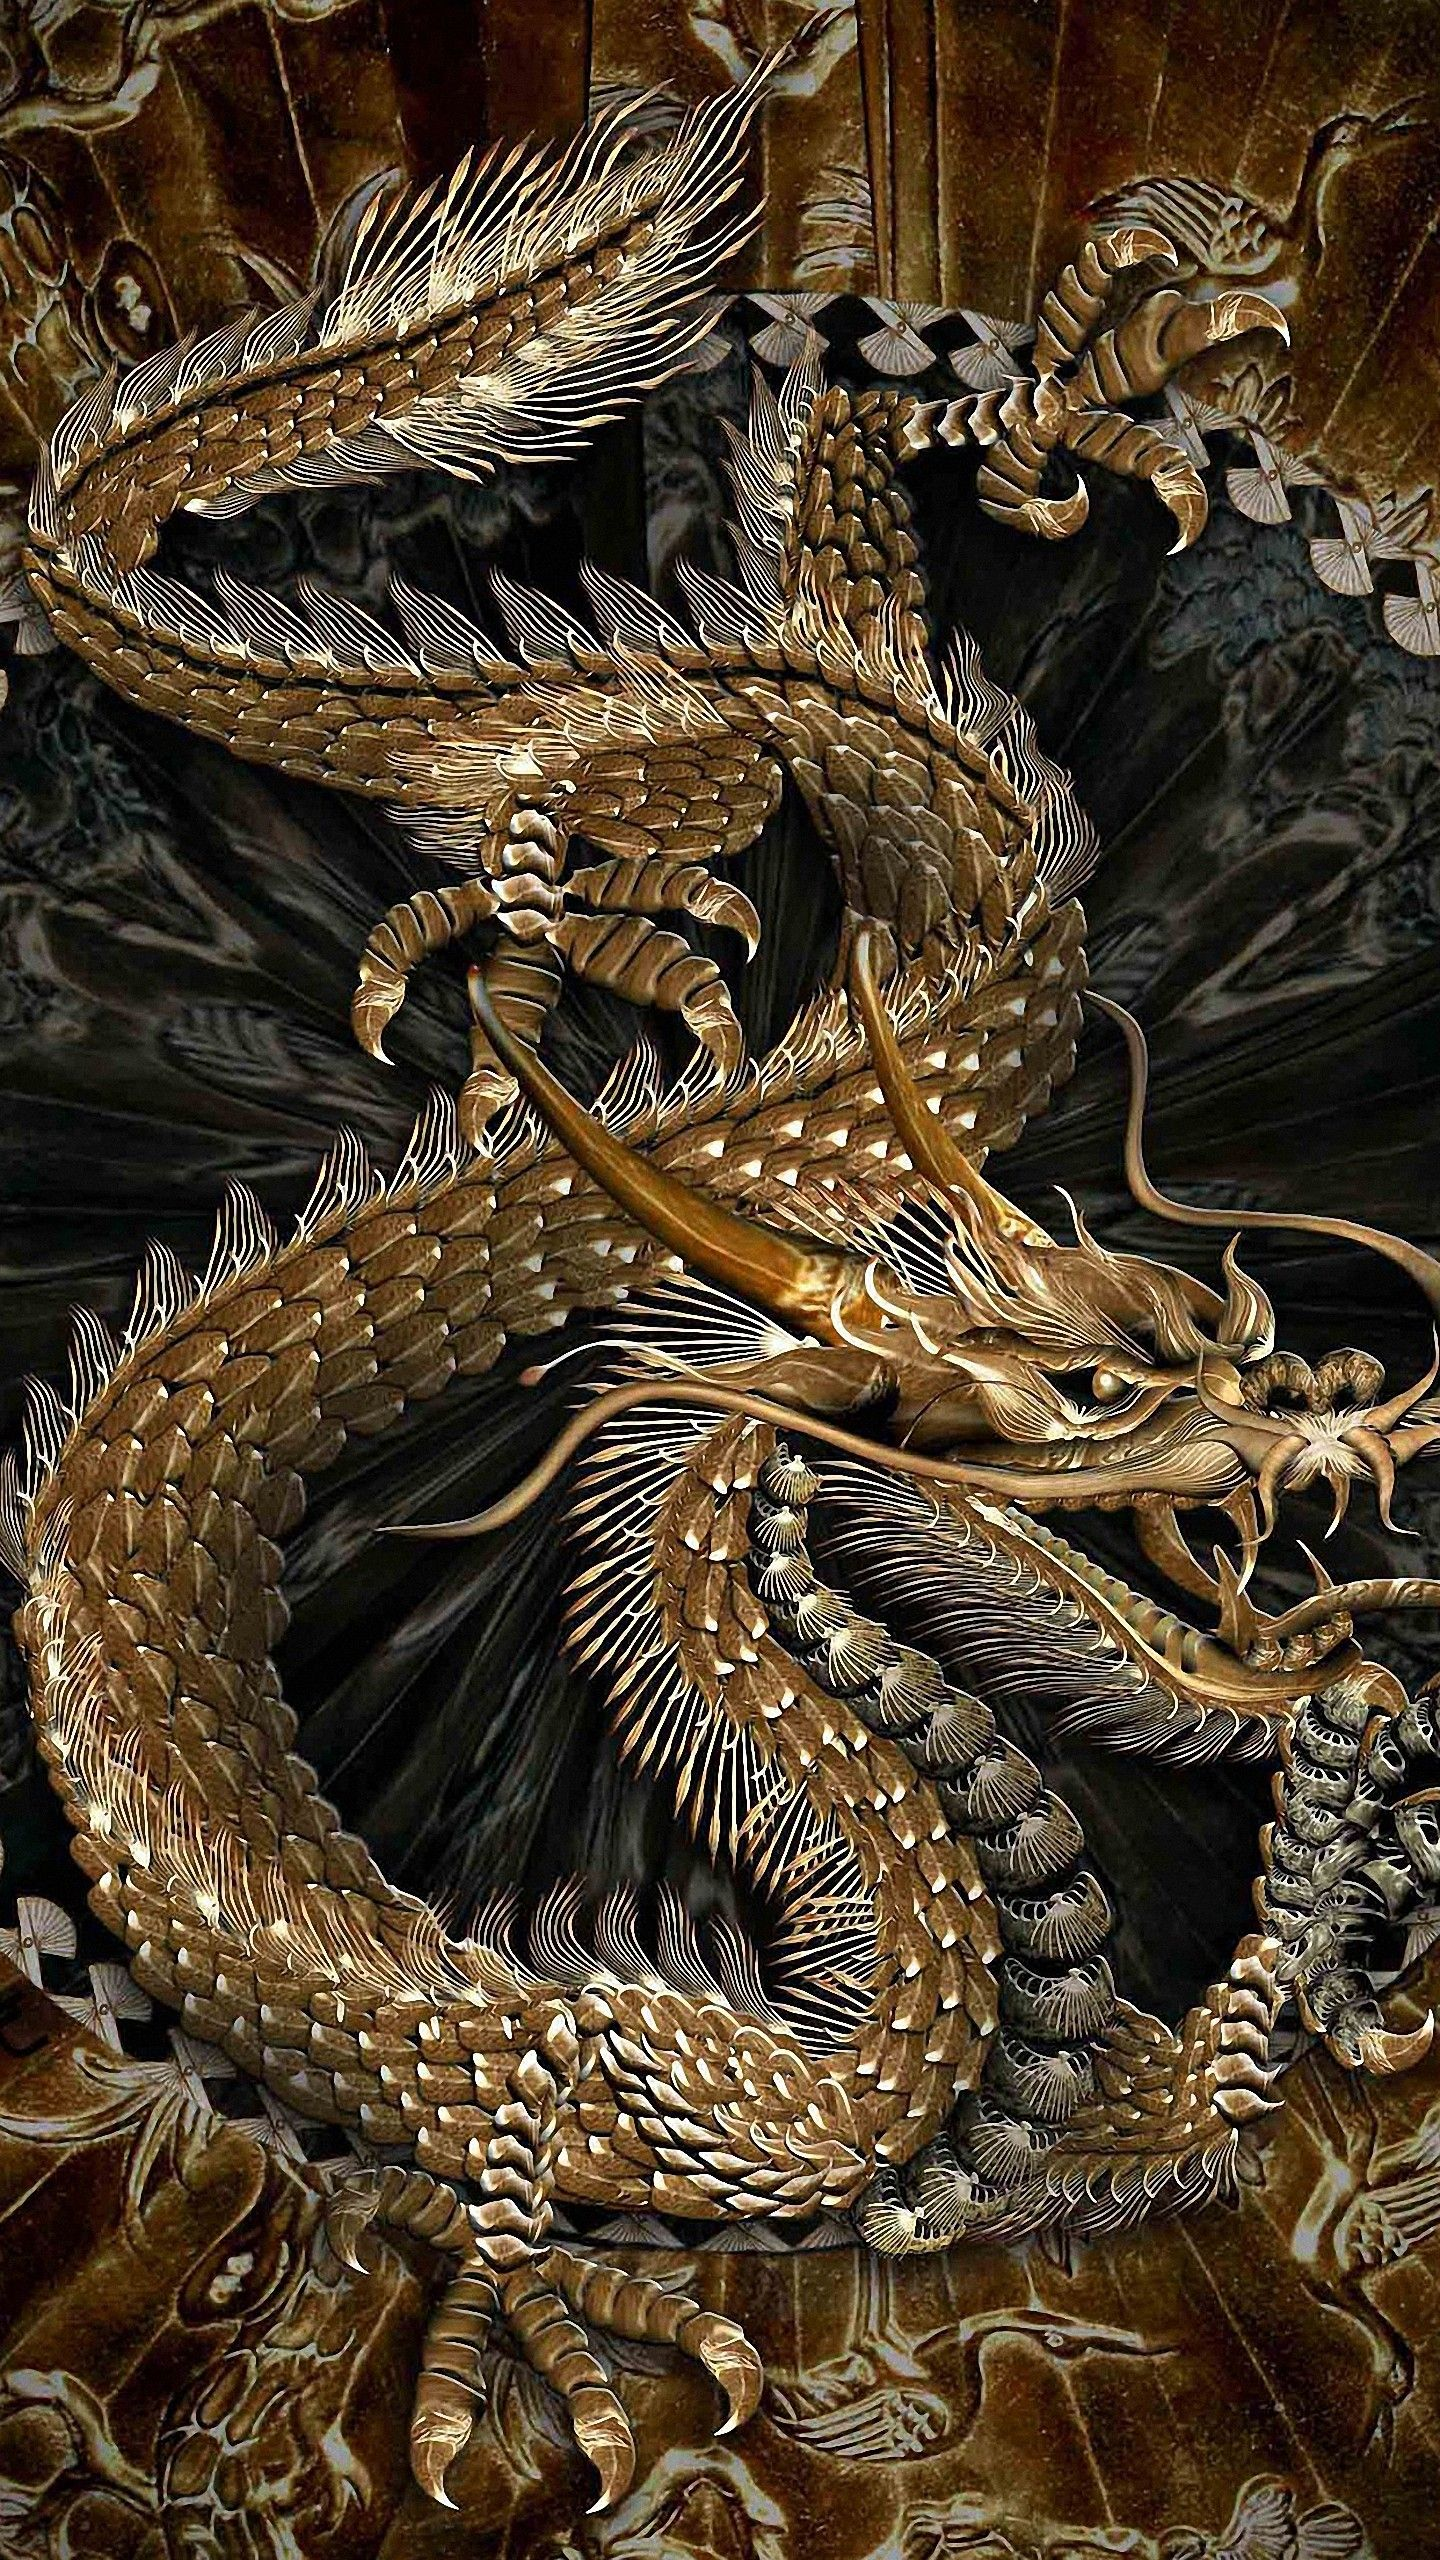 1440x2560 Wallpaper Hd Mywallpapers Site In 2020 Dragon Pictures Japanese Dragon Dragon Artwork